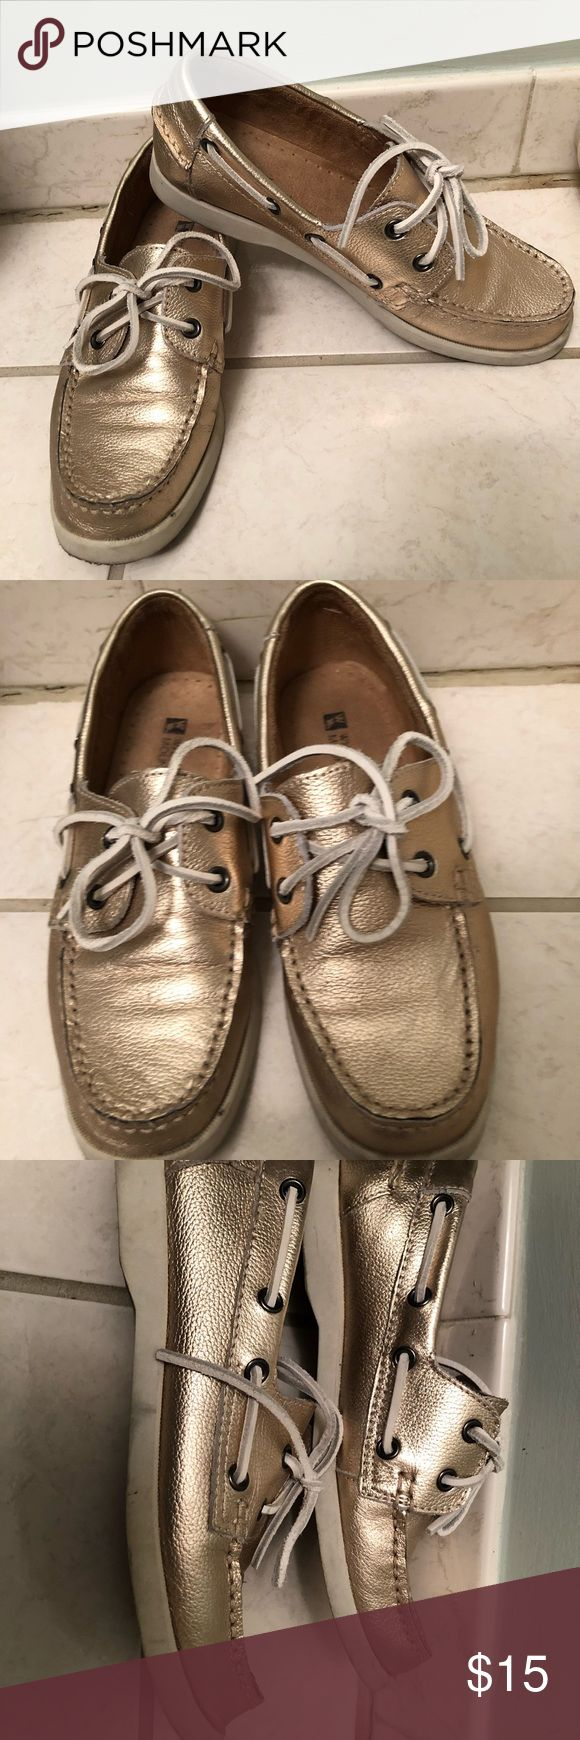 White mountain gold leather boat shoes 6.5 Worn once! Vguc white mountain gold leather boat shoes.  Size 6.5. Leather is in excellent condition. The only signs of wear are the bottoms and some dirt marks on the white soles ... which may wipe off, I will try to get off any marks on the white when I ship White Mountain Shoes Flats & Loafers